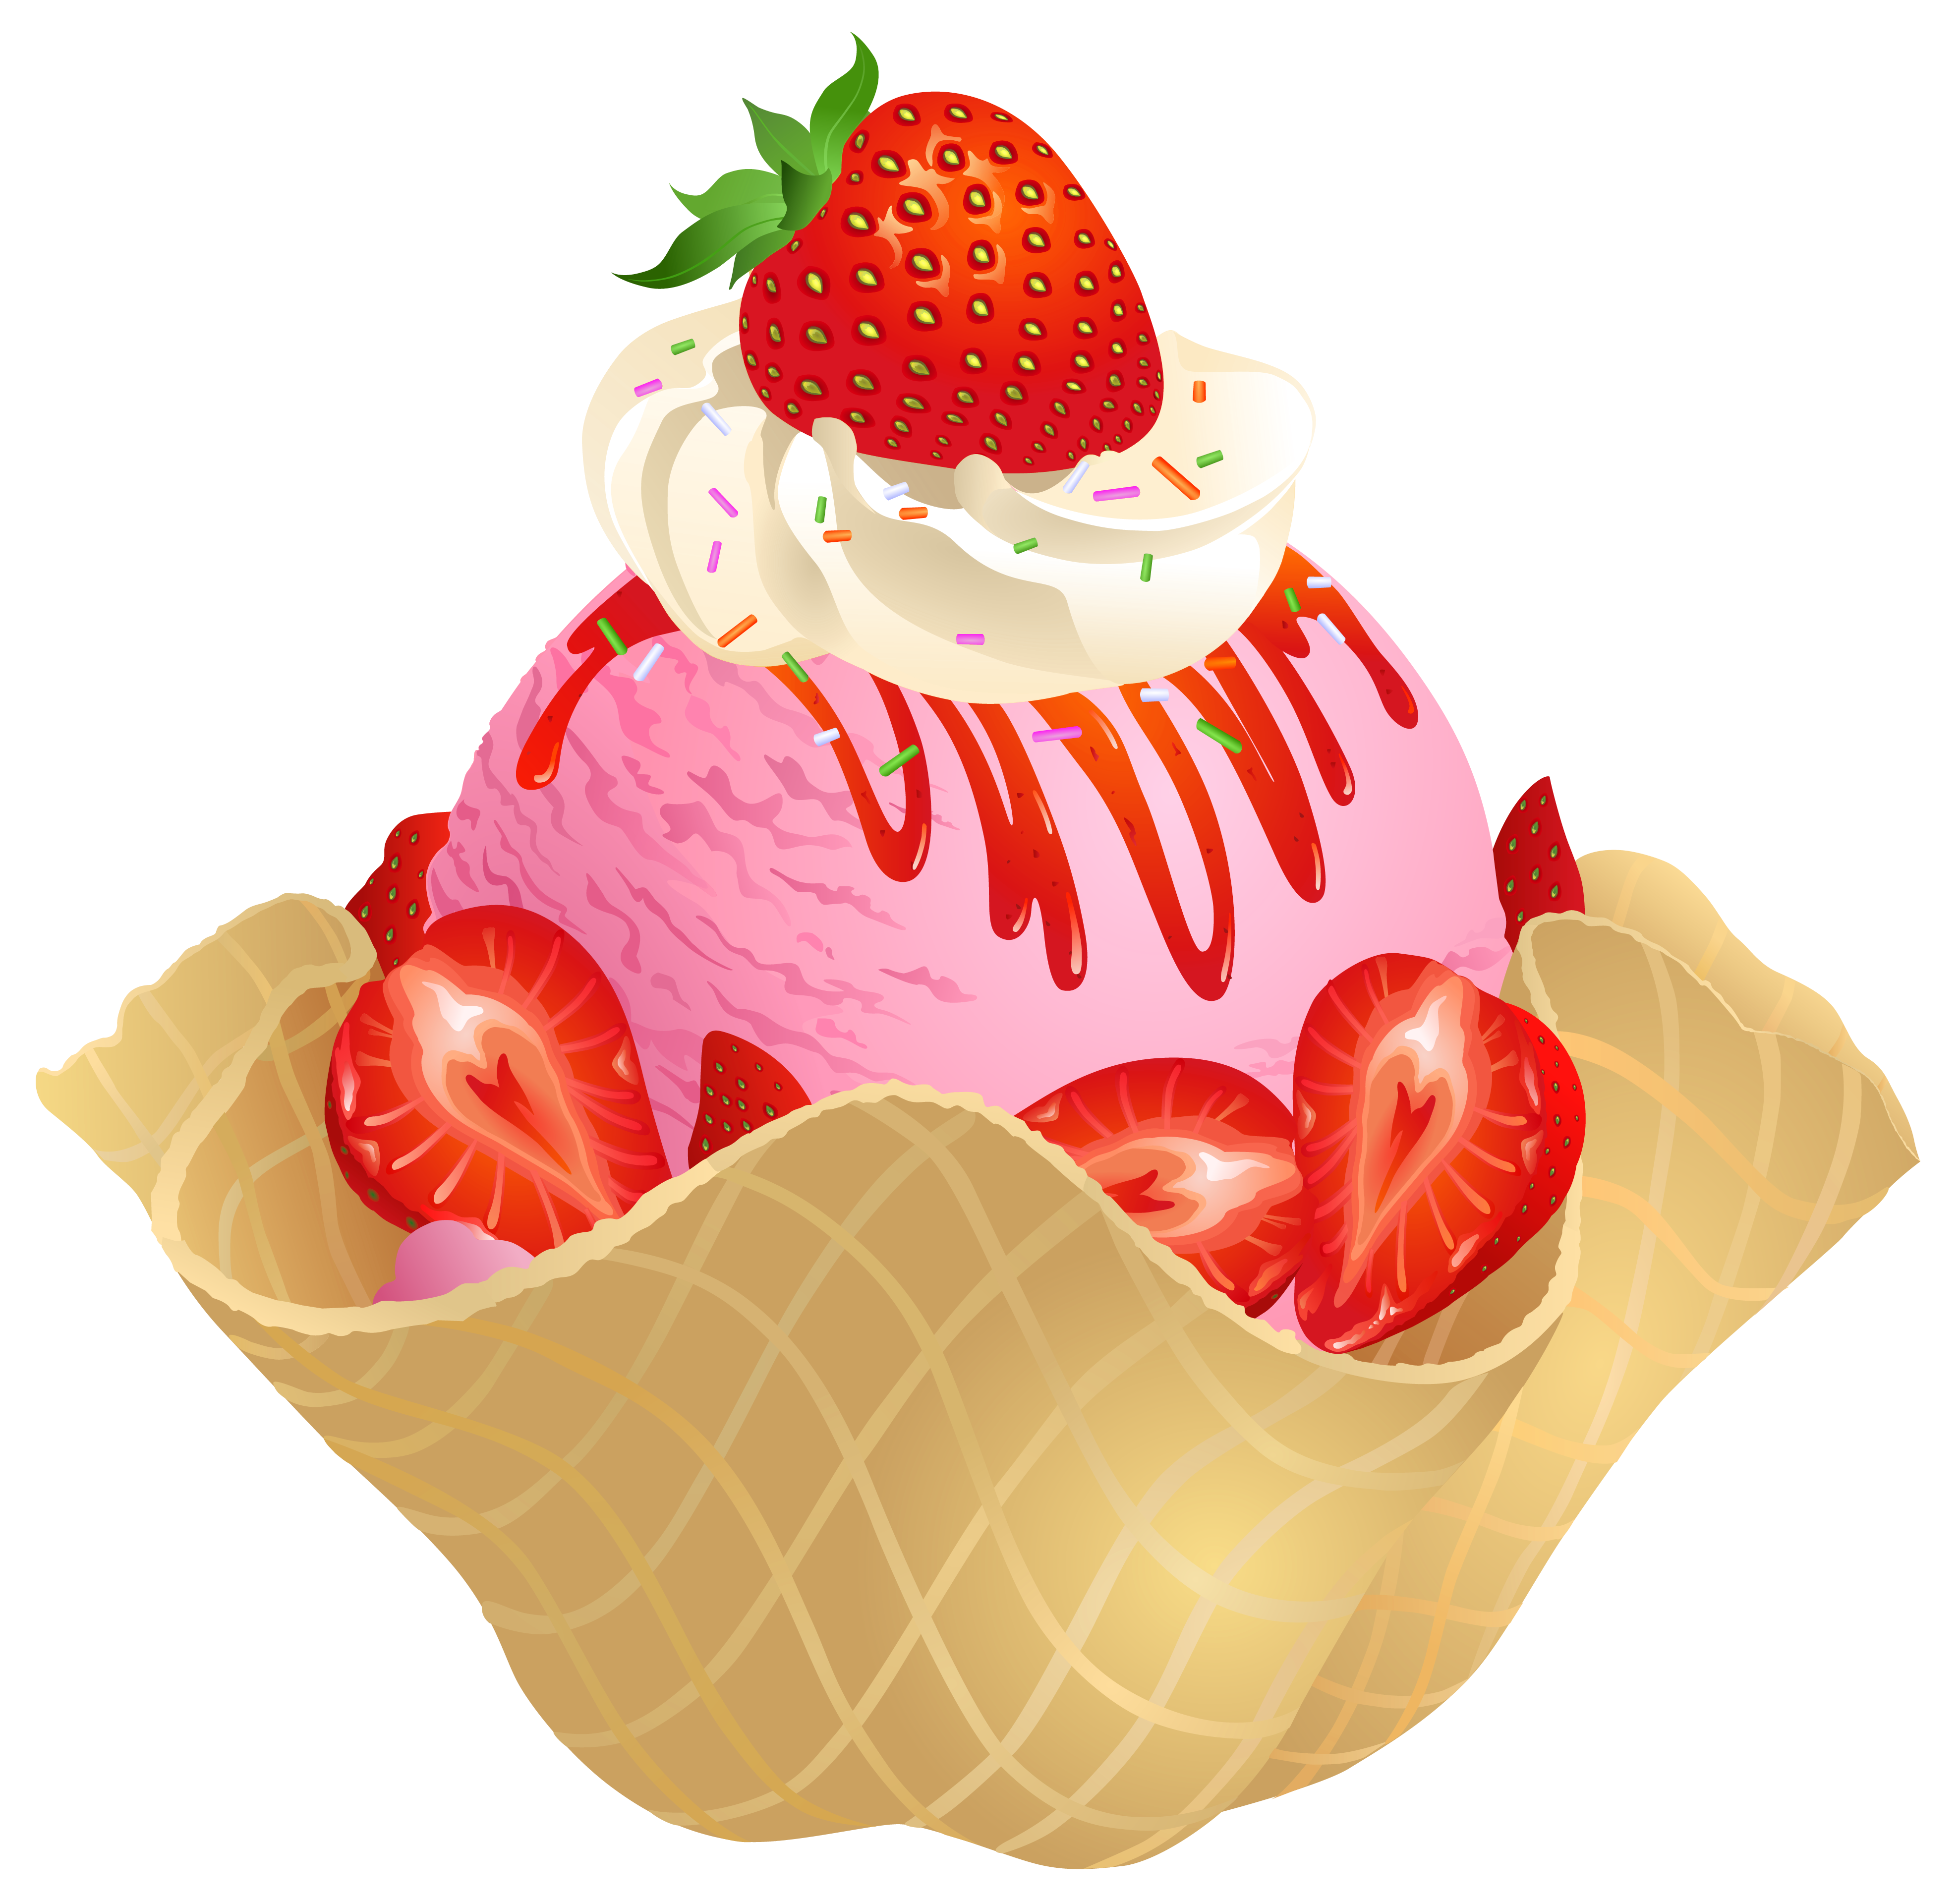 Caramel apple clipart transparent background clip art freeuse stock Transparent Strawberry Ice Cream Waffle Basket PNG Picture | Clip ... clip art freeuse stock